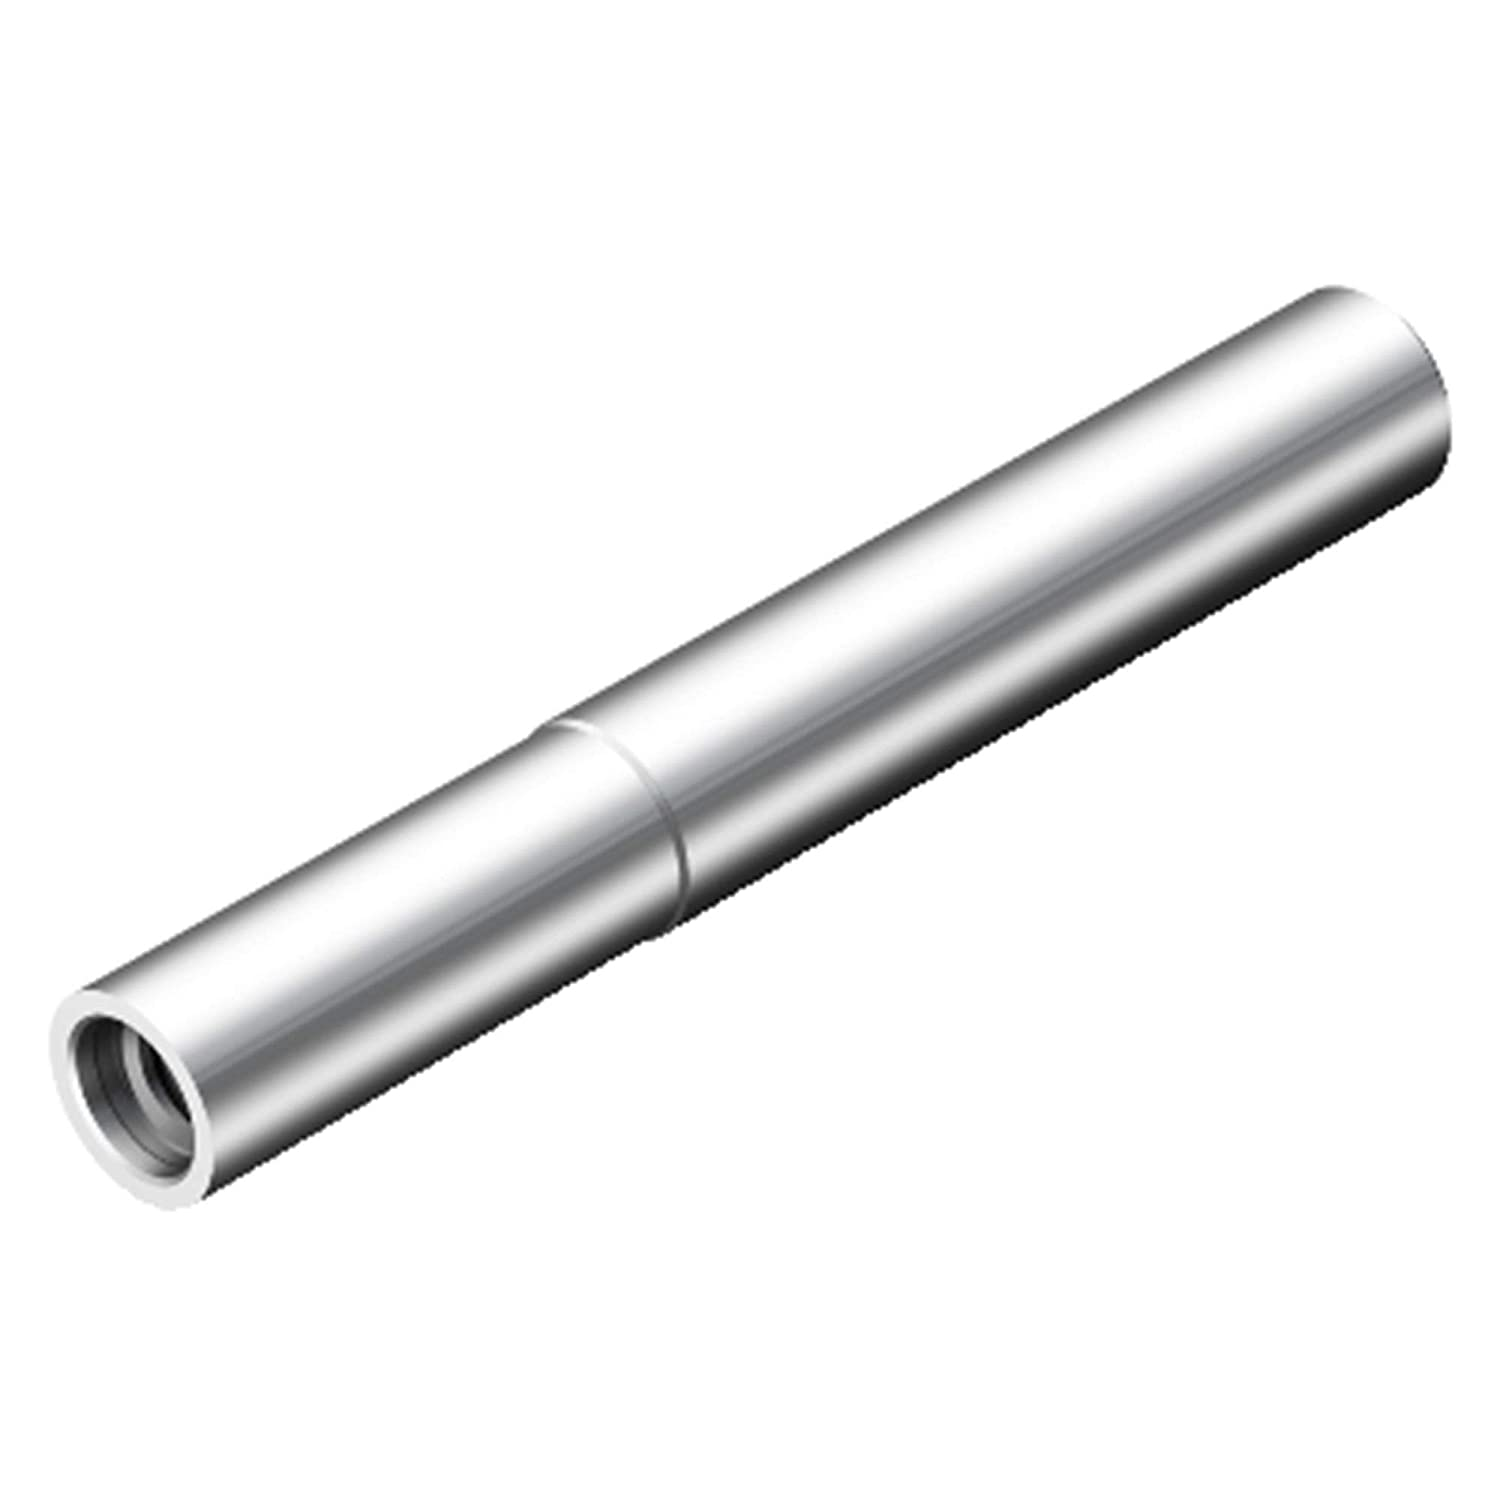 90 Degree Entering Angle Sandvik Coromant Solid Carbide Indexable Milling Tool 6 Flutes